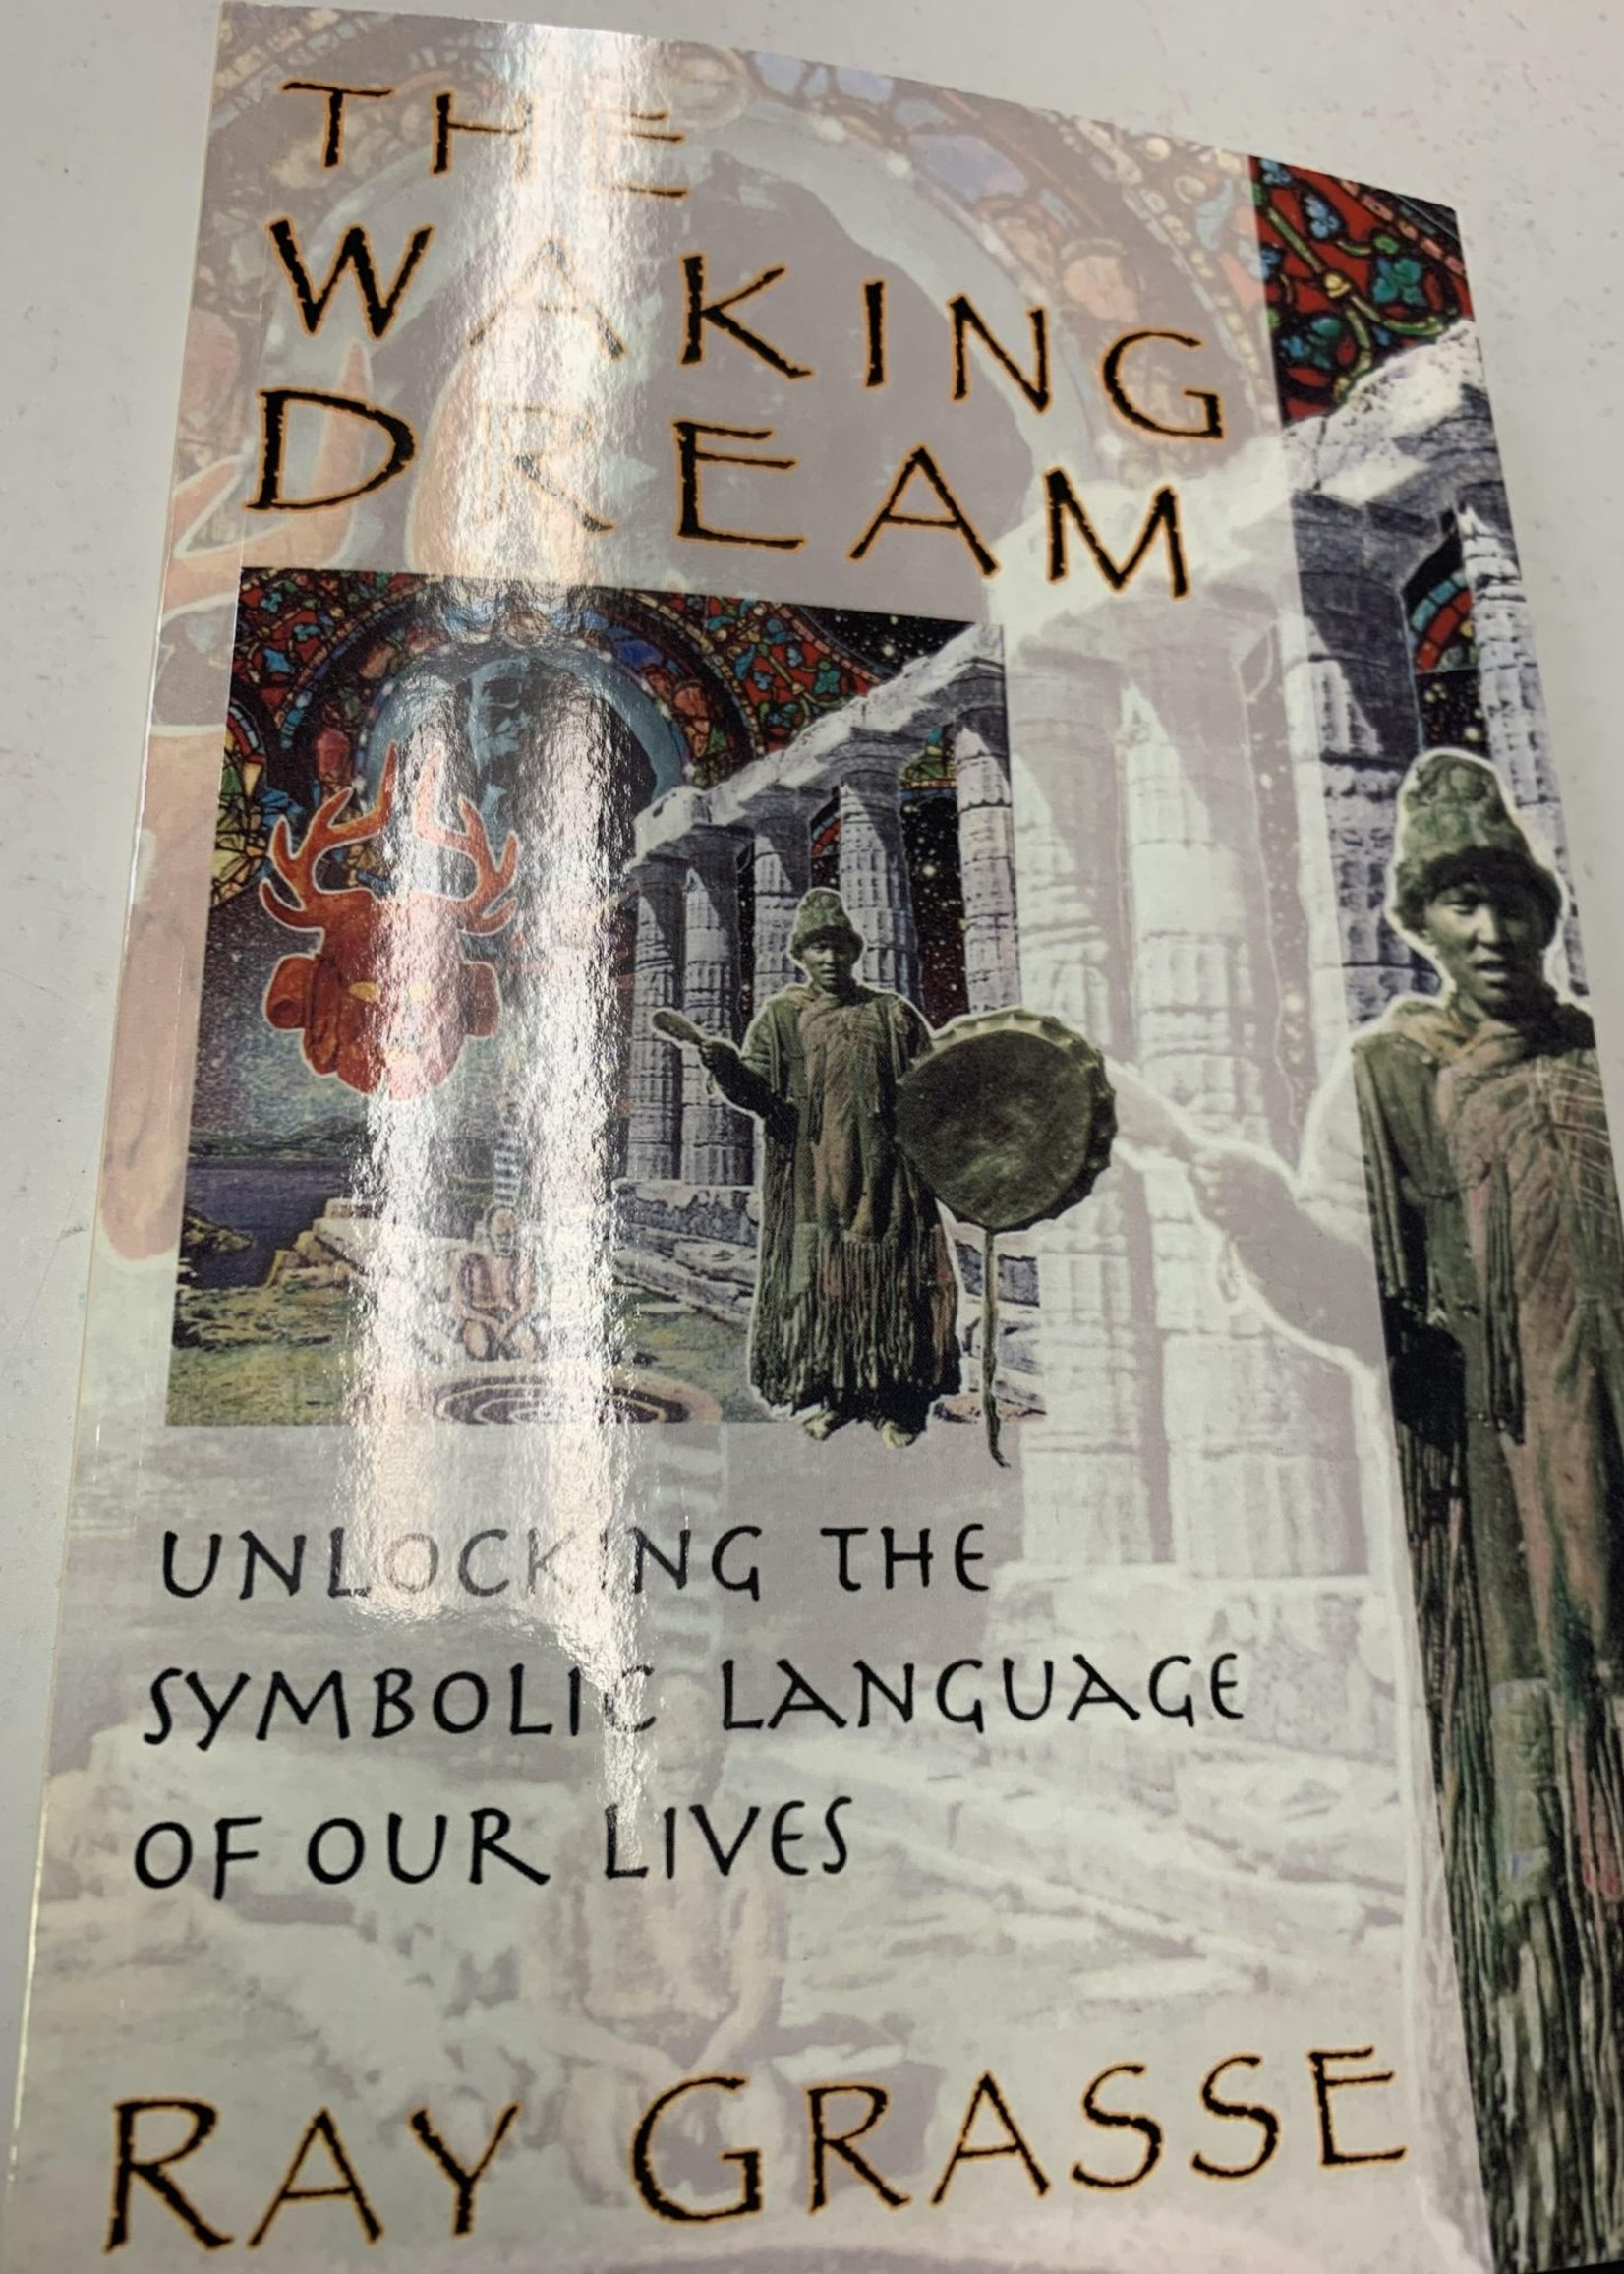 The Waking Dream - Unlocking the Symbolic Language of Our Lives - Ray Grasse